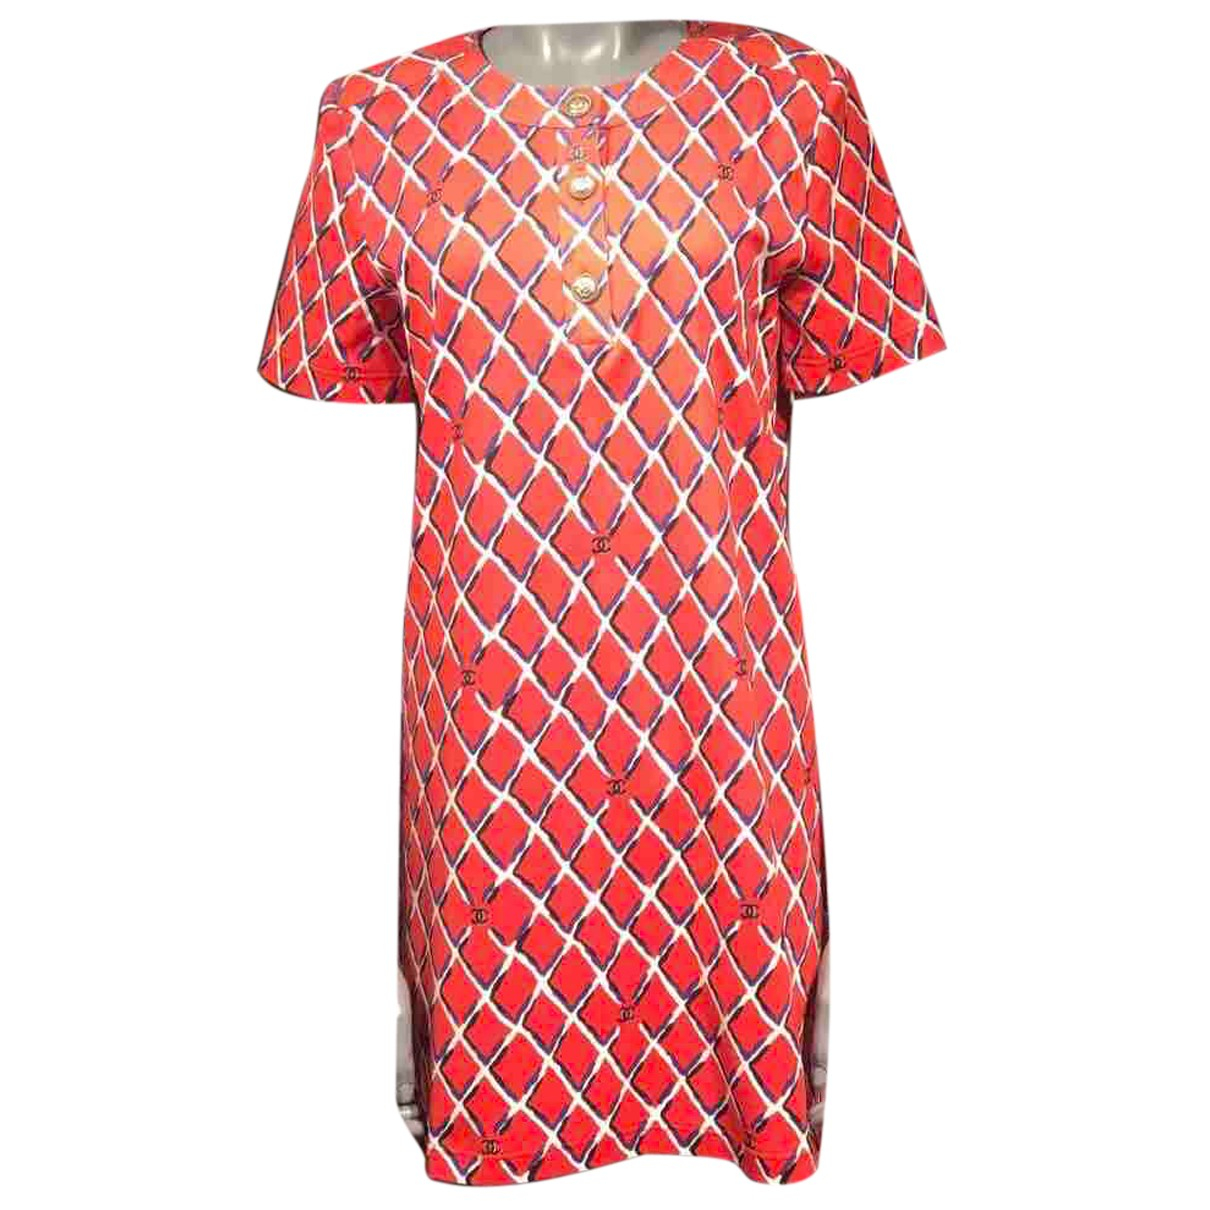 Chanel N Red Cotton dress for Women 38 FR